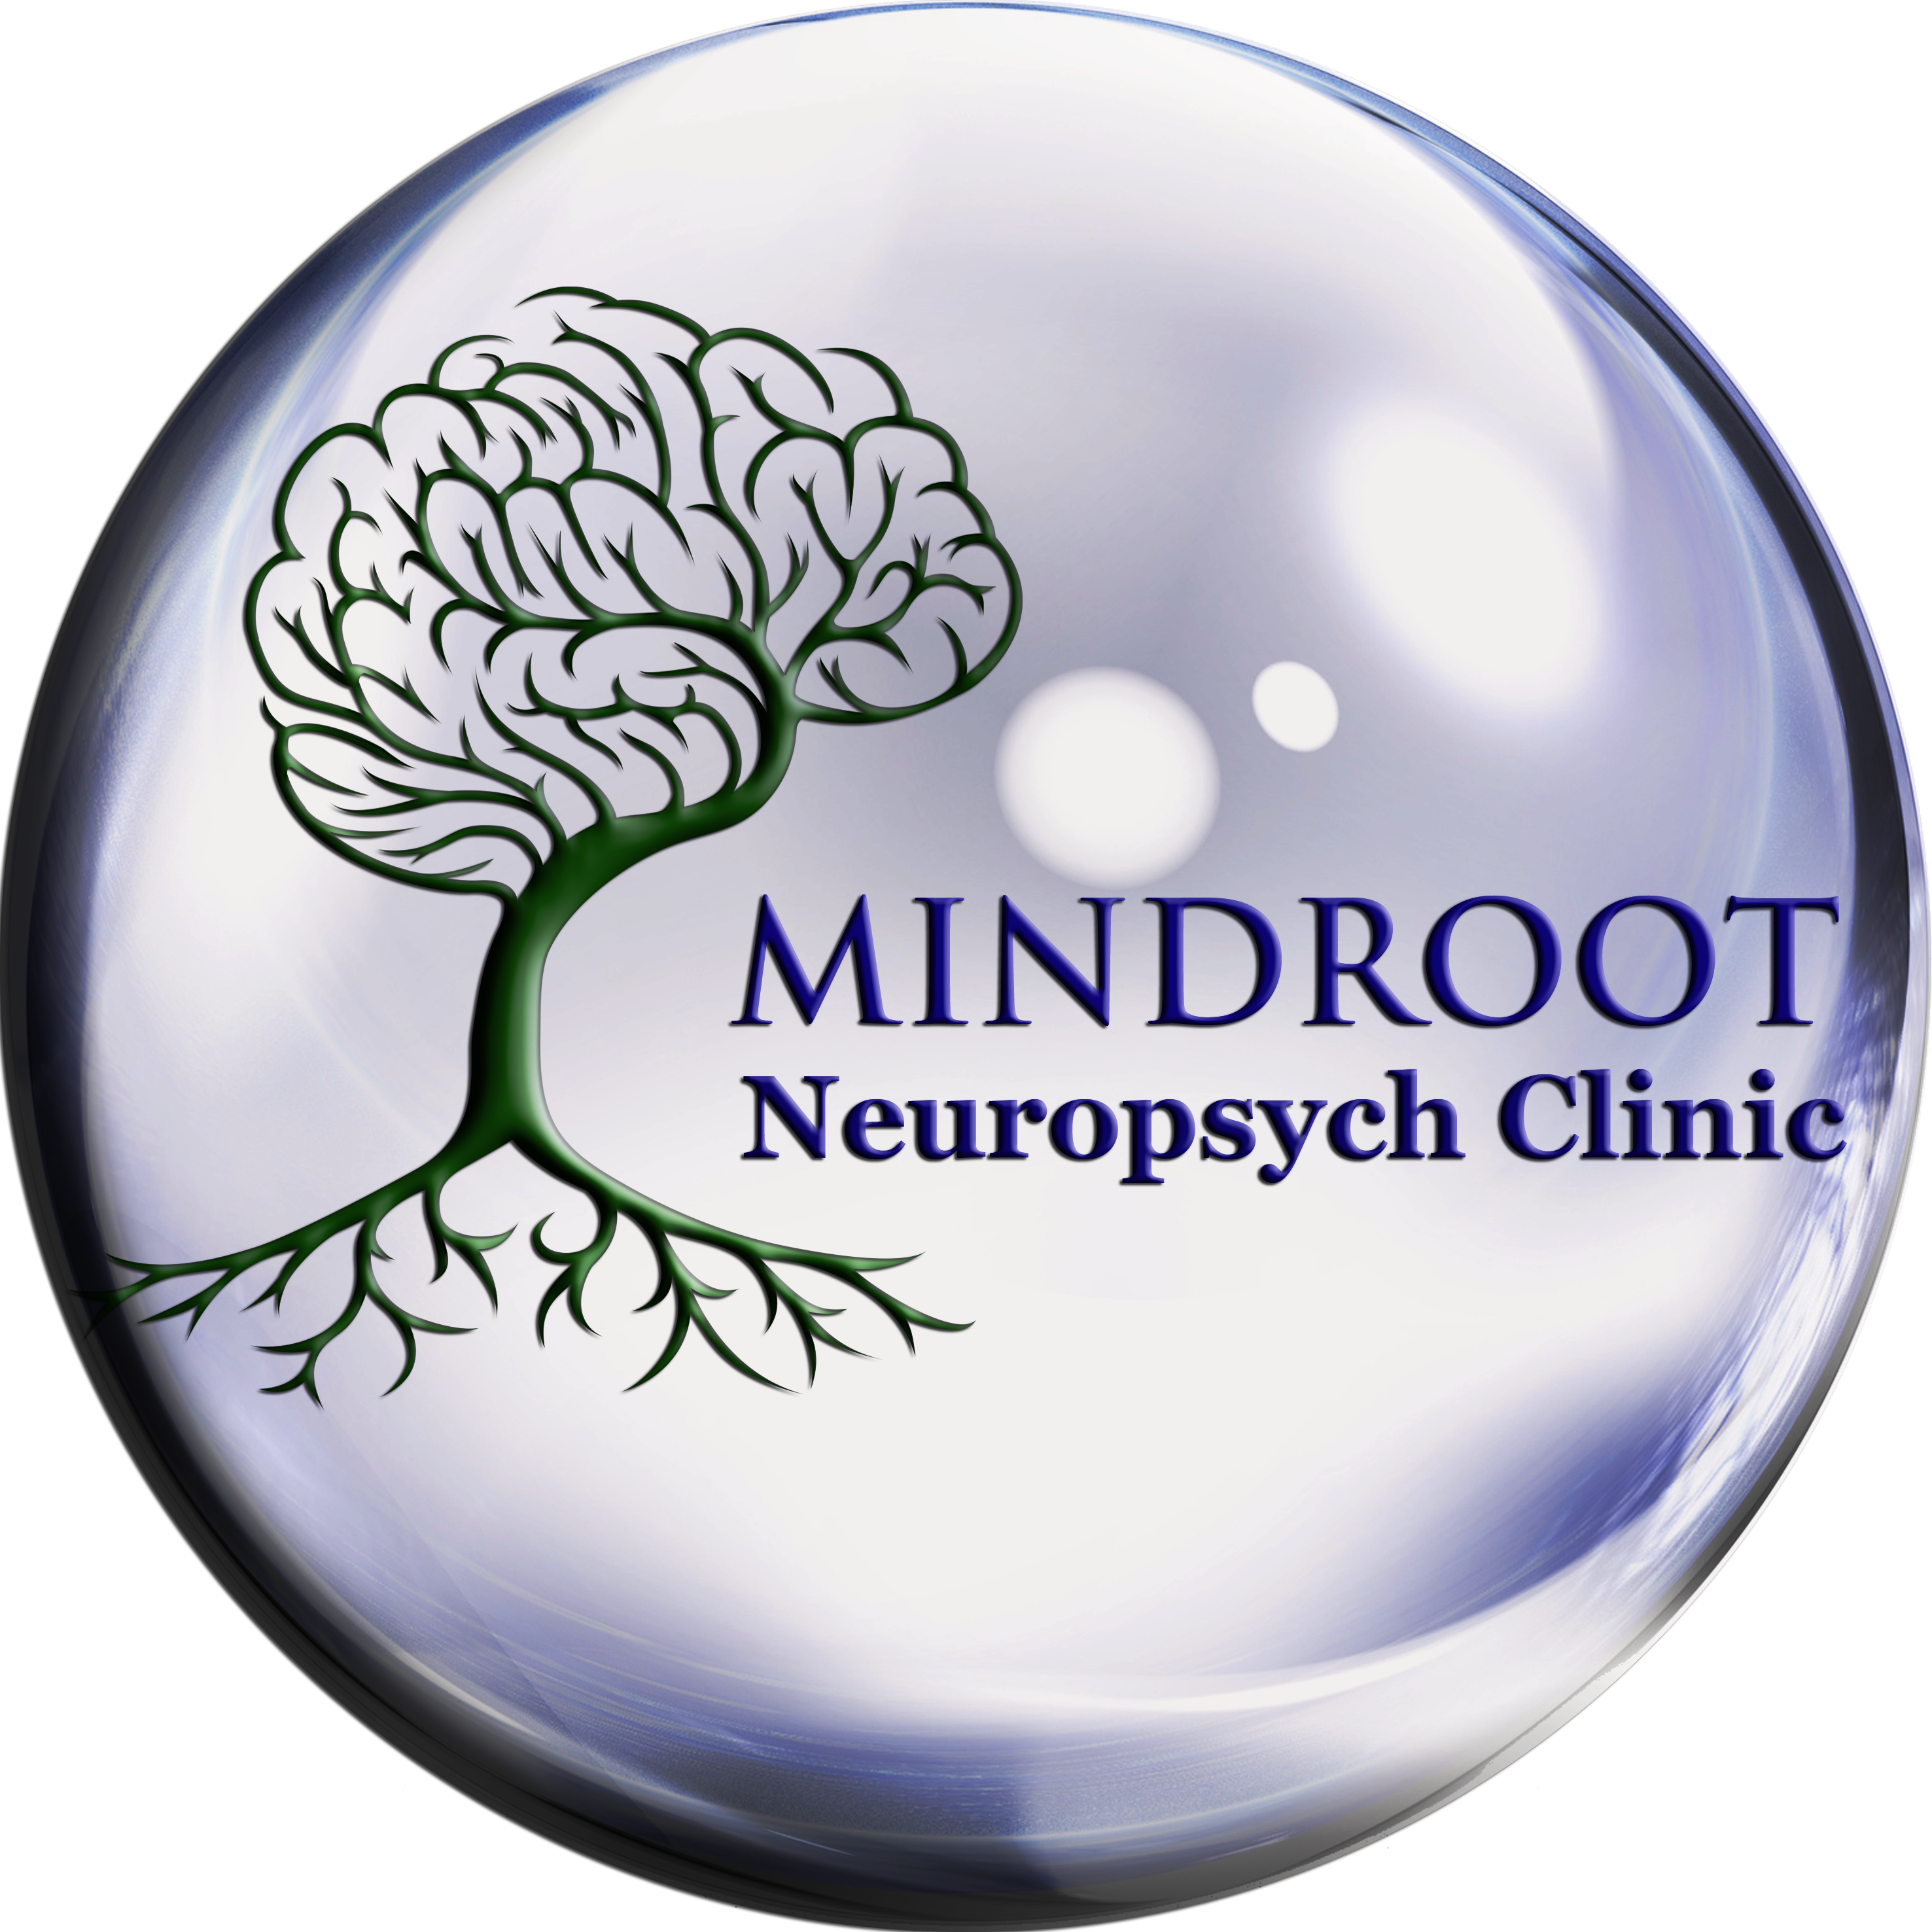 Mindroot Neuropsych Clinic